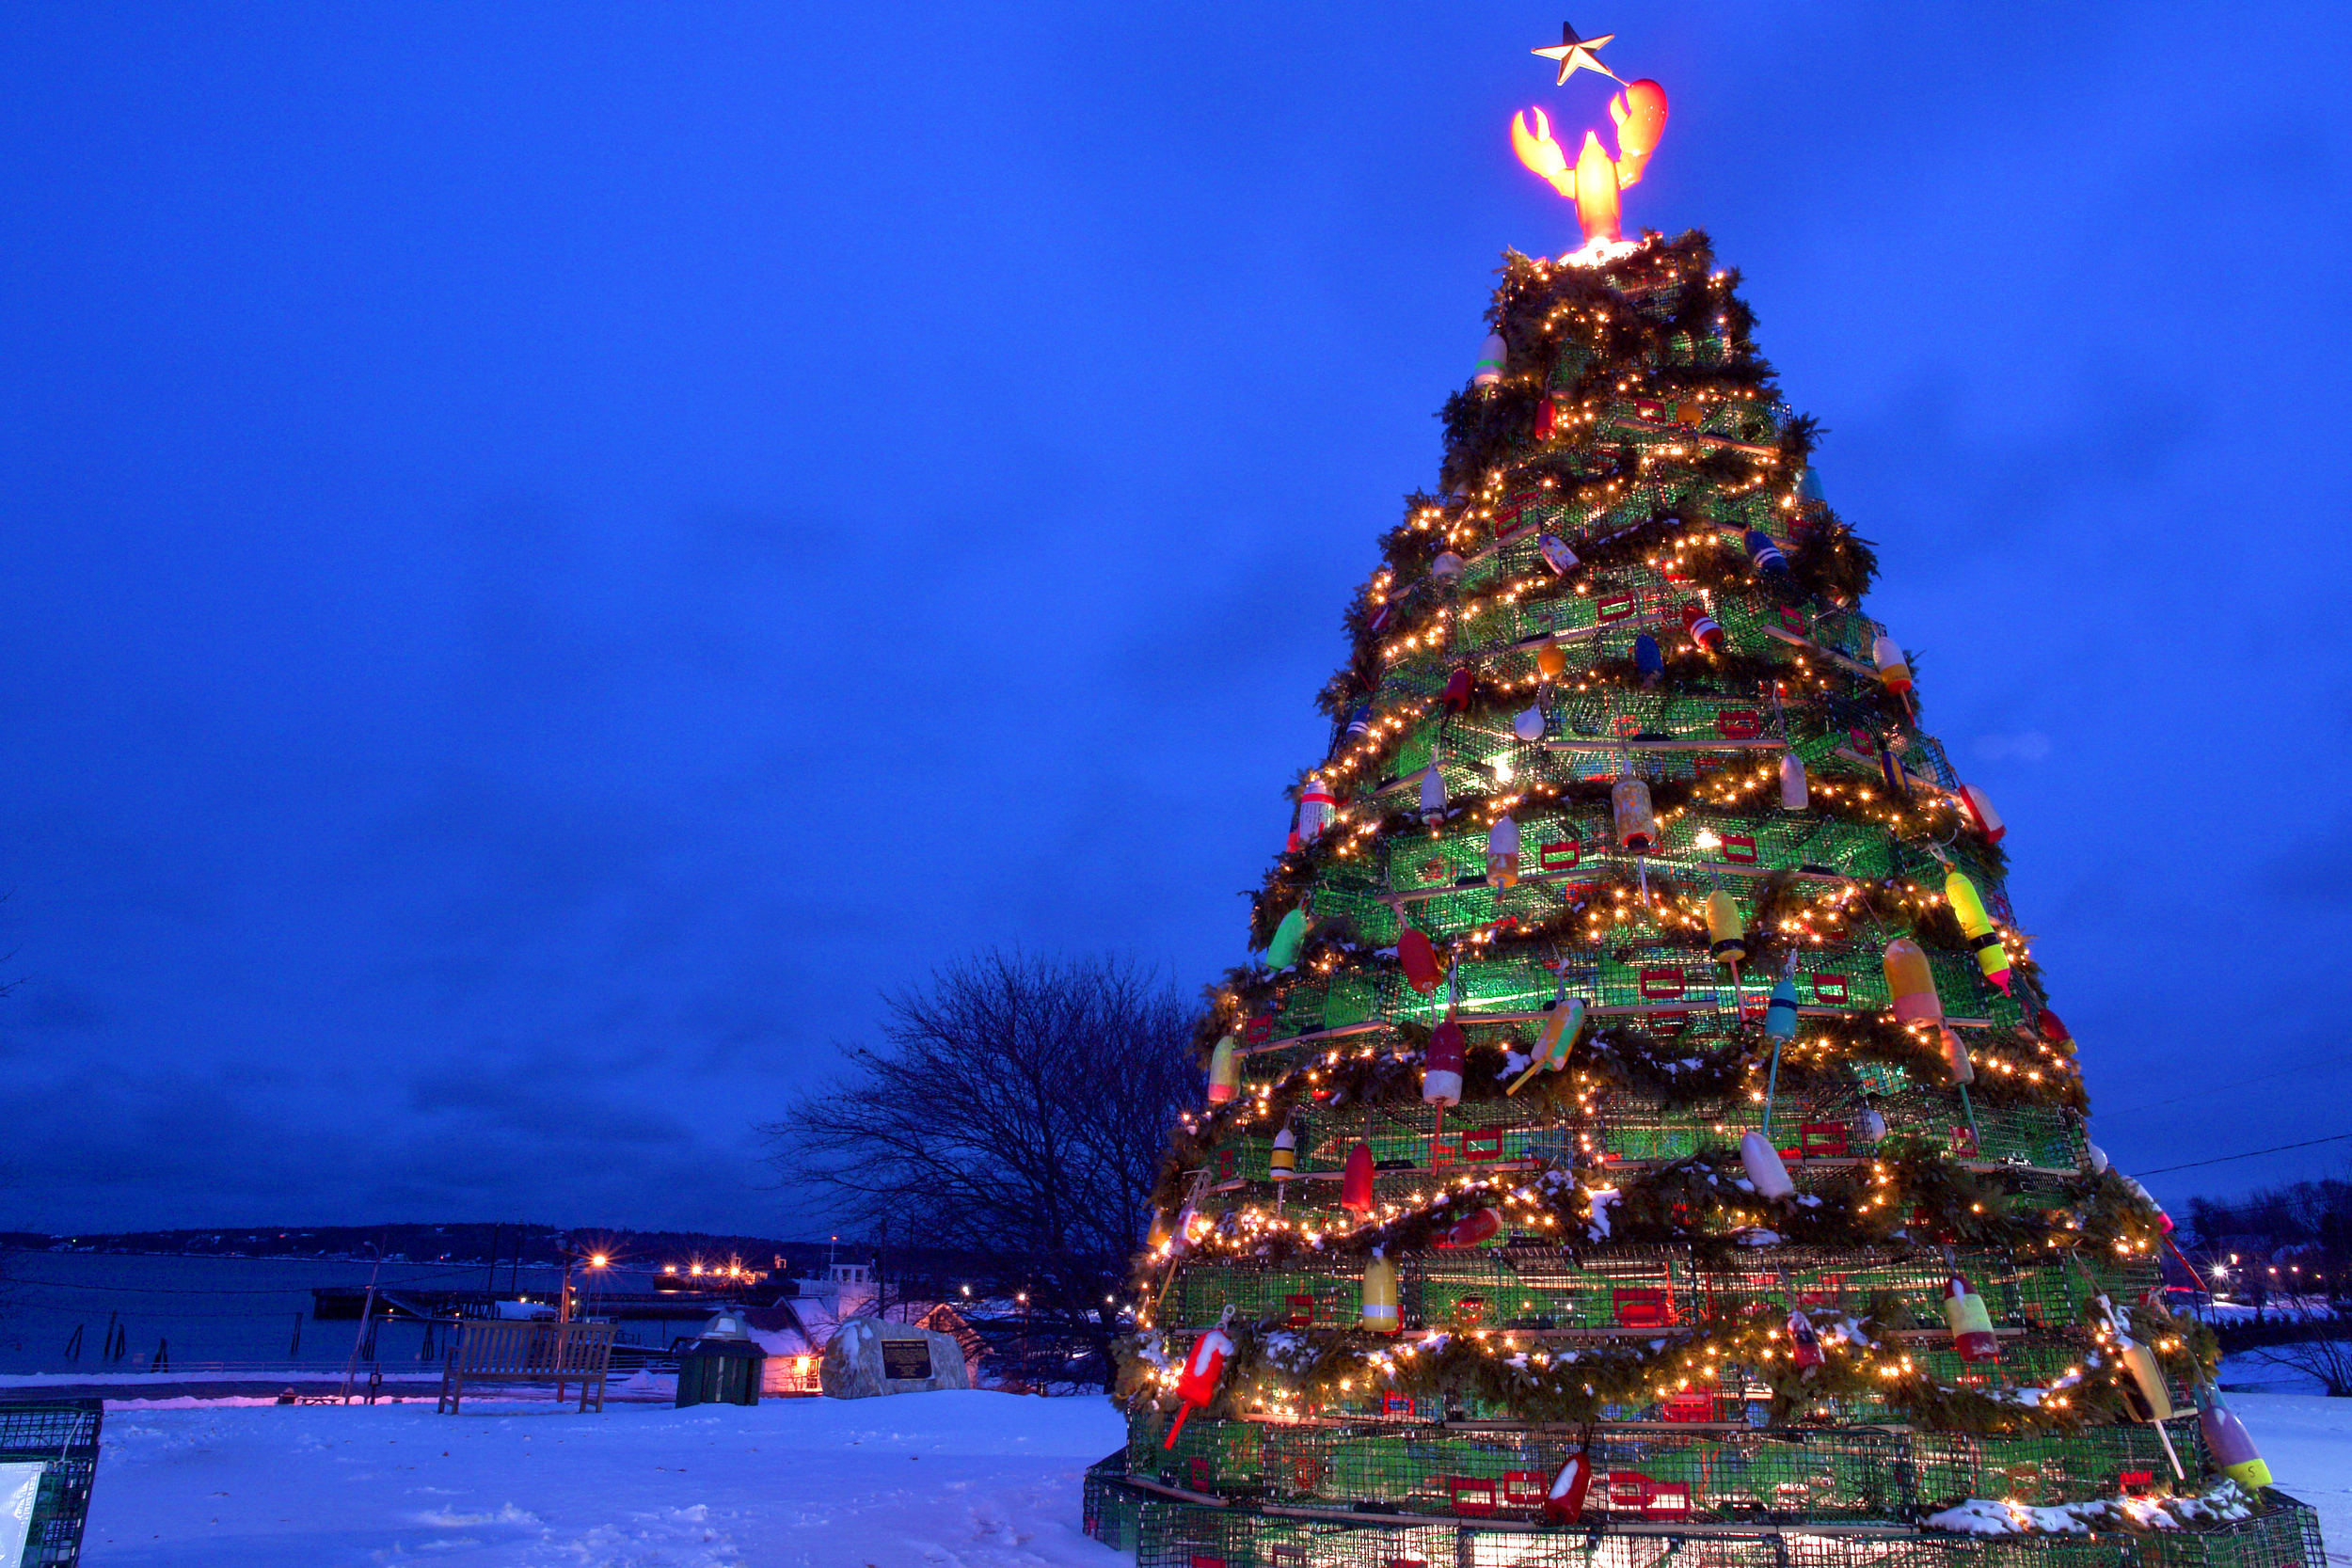 World's Largest Lobster Trap Tree at Festival of Lights